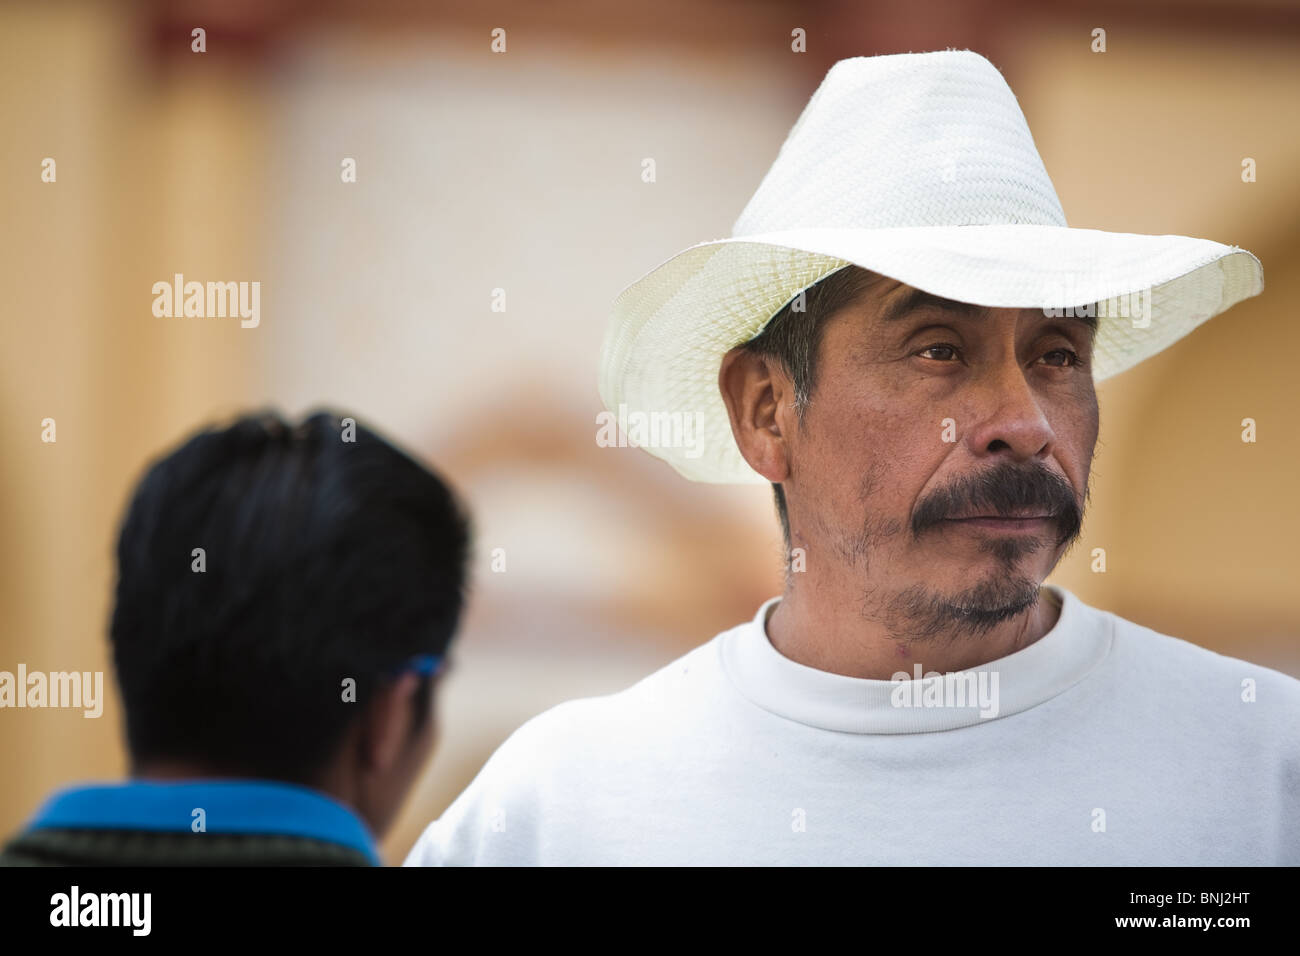 Typical mexican man